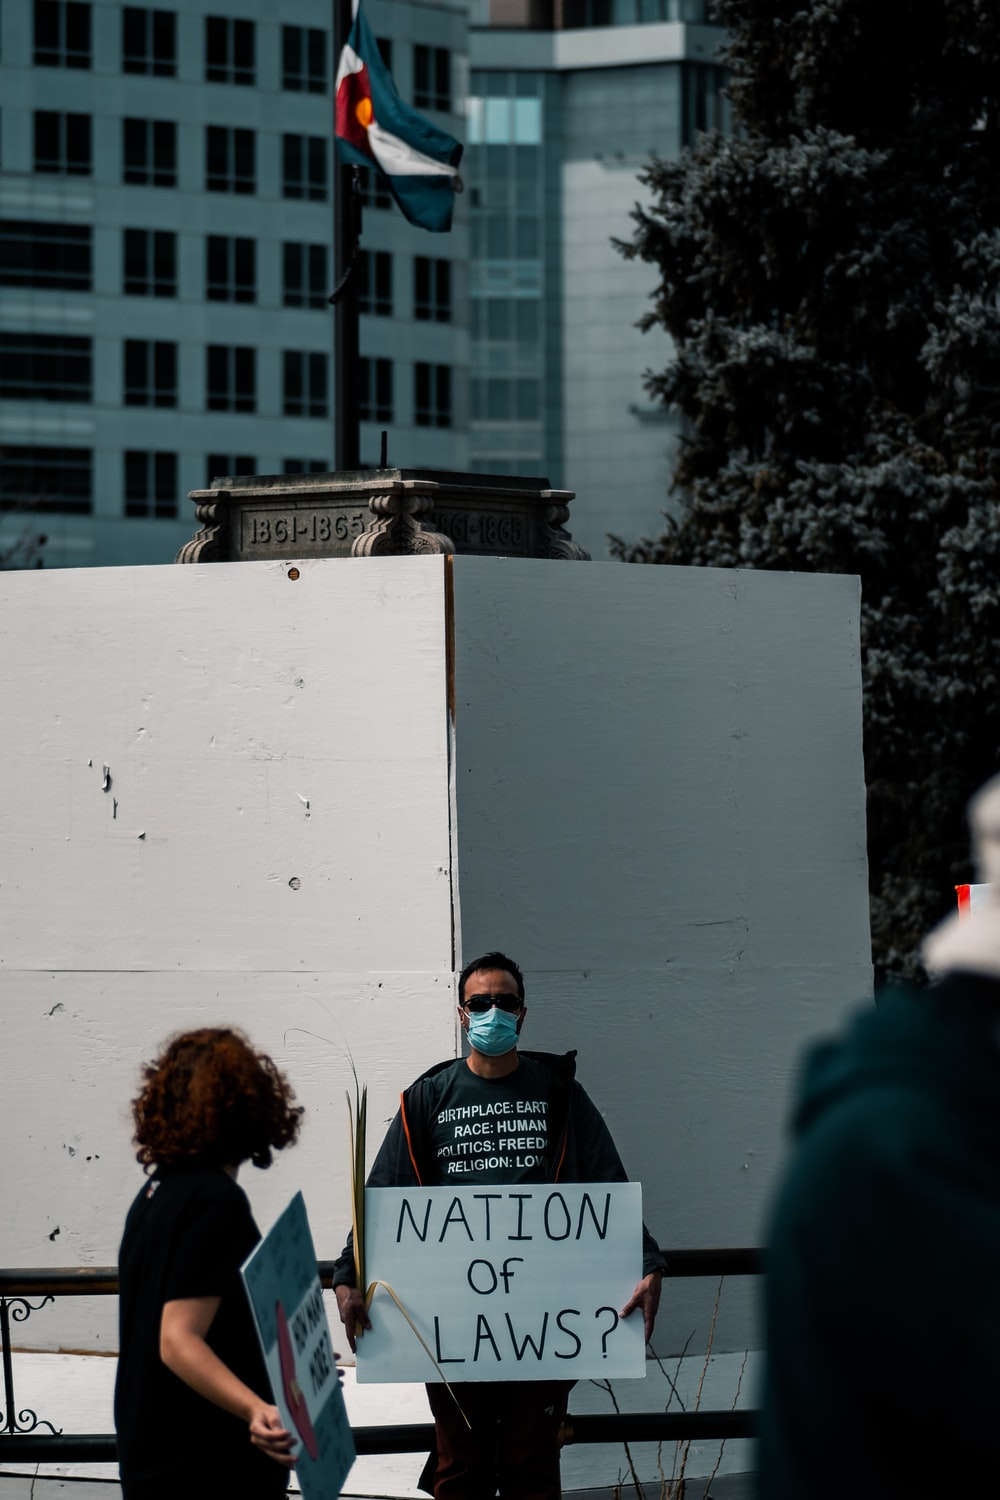 people standing near white concrete building during daytime